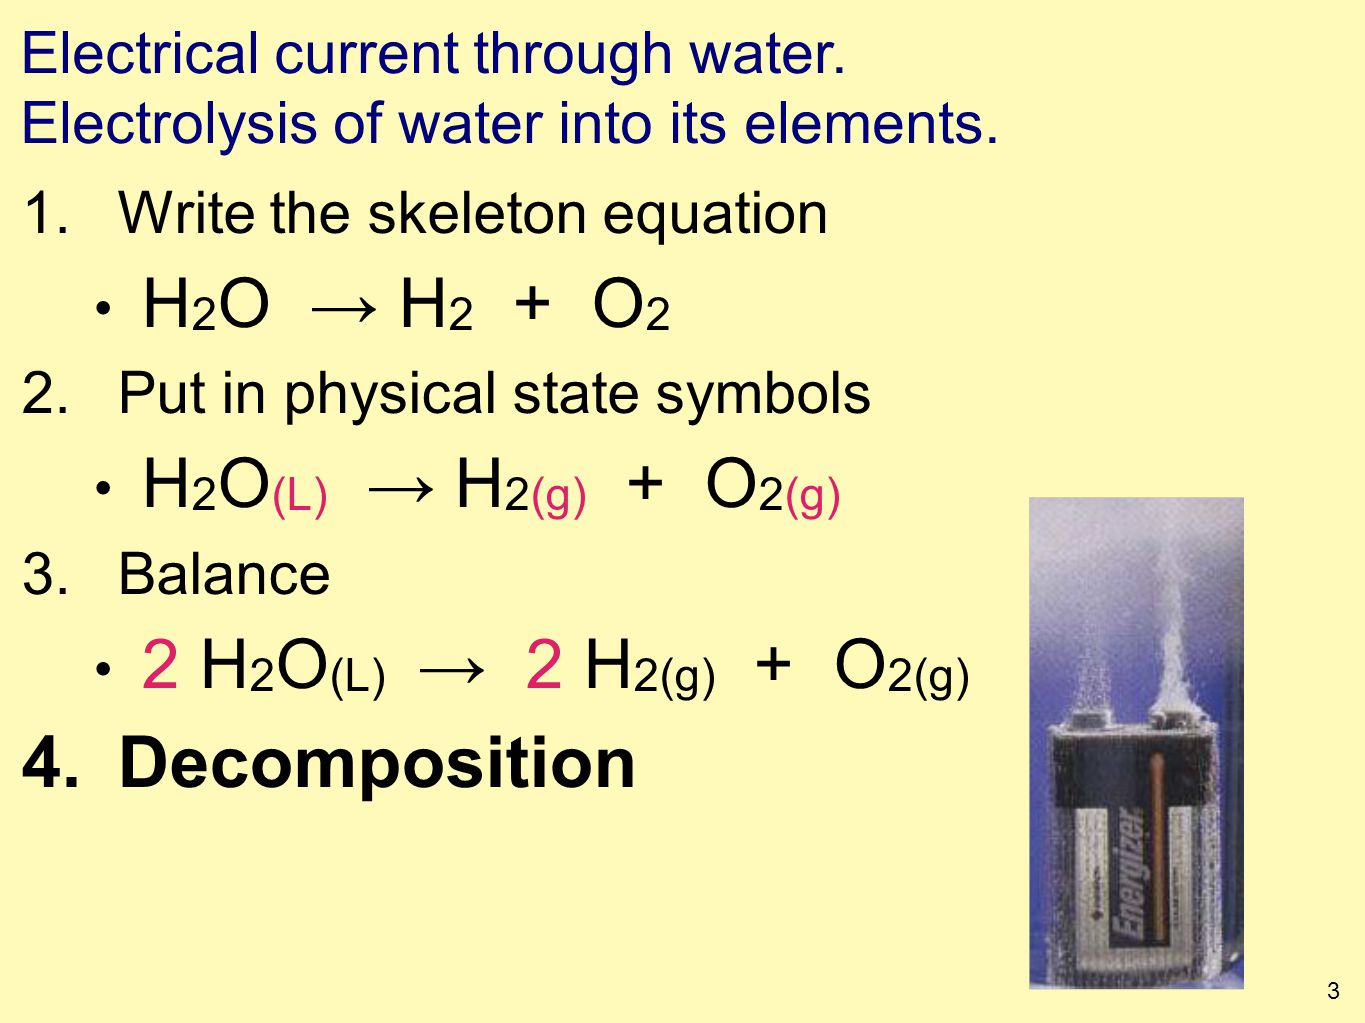 1 writing chemical equations to symbolize chemical reactions 3 3 electrical biocorpaavc Choice Image